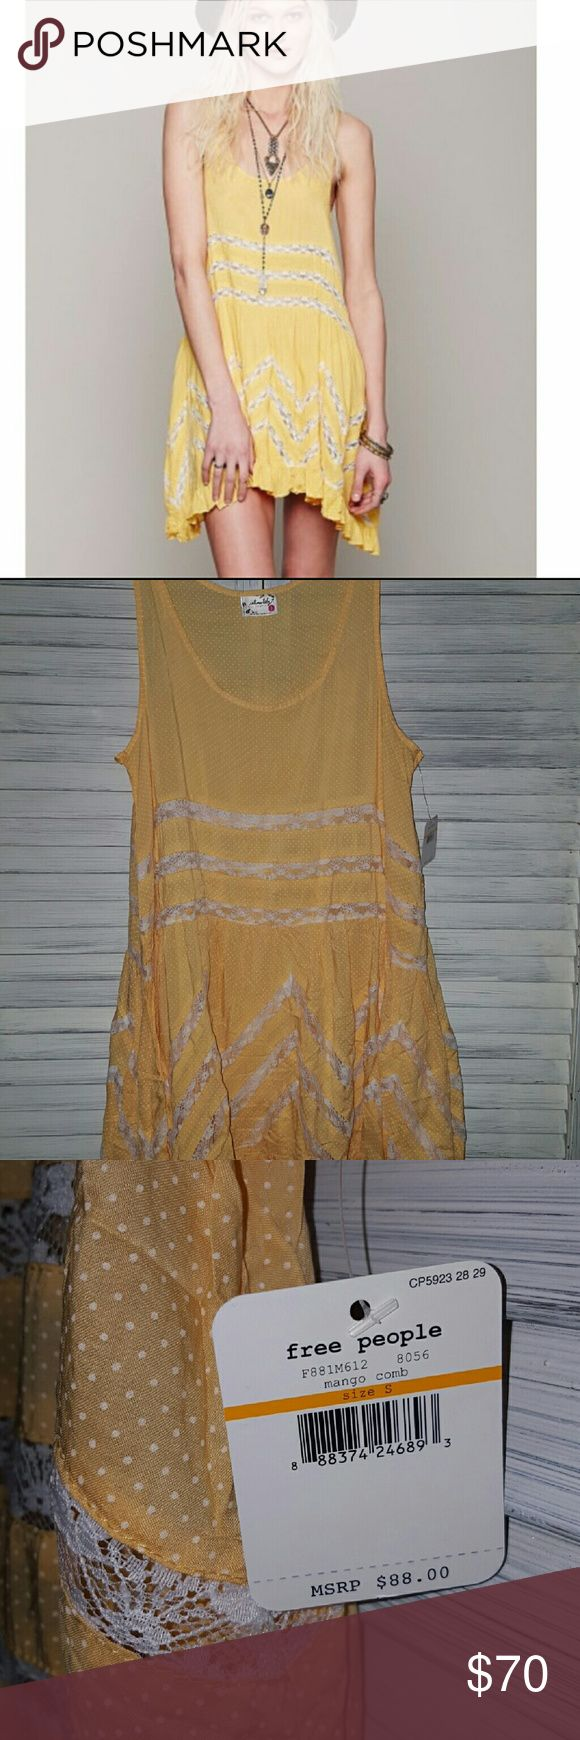 NWT-Free People Voile and Lace?Trapeze Slip -Mango Mango combo Never worn Perfect summer shade  Cheaper on M Firm Free People Dresses Mini